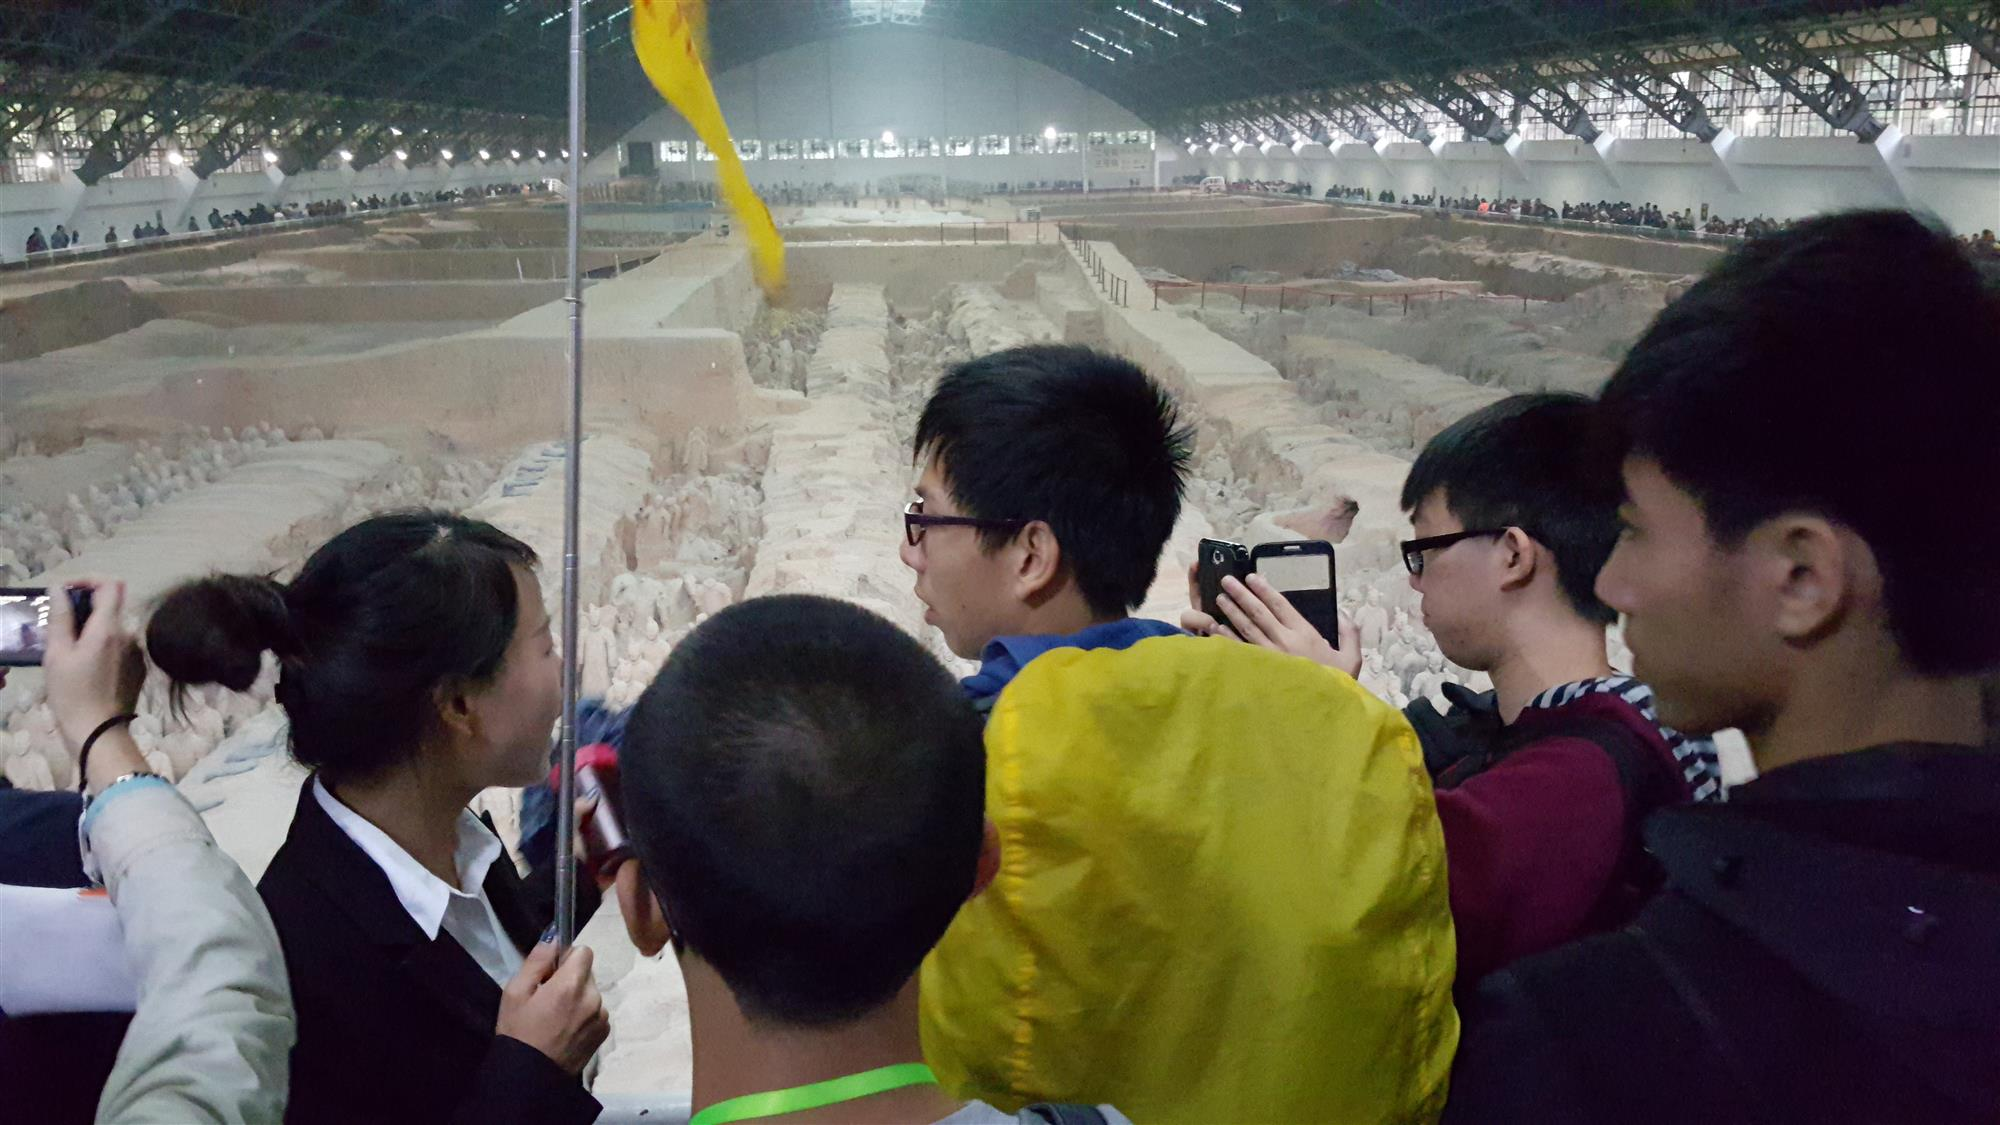 Students were visiting the Emperor Qinshihuang's Mausoleum Site Museum.